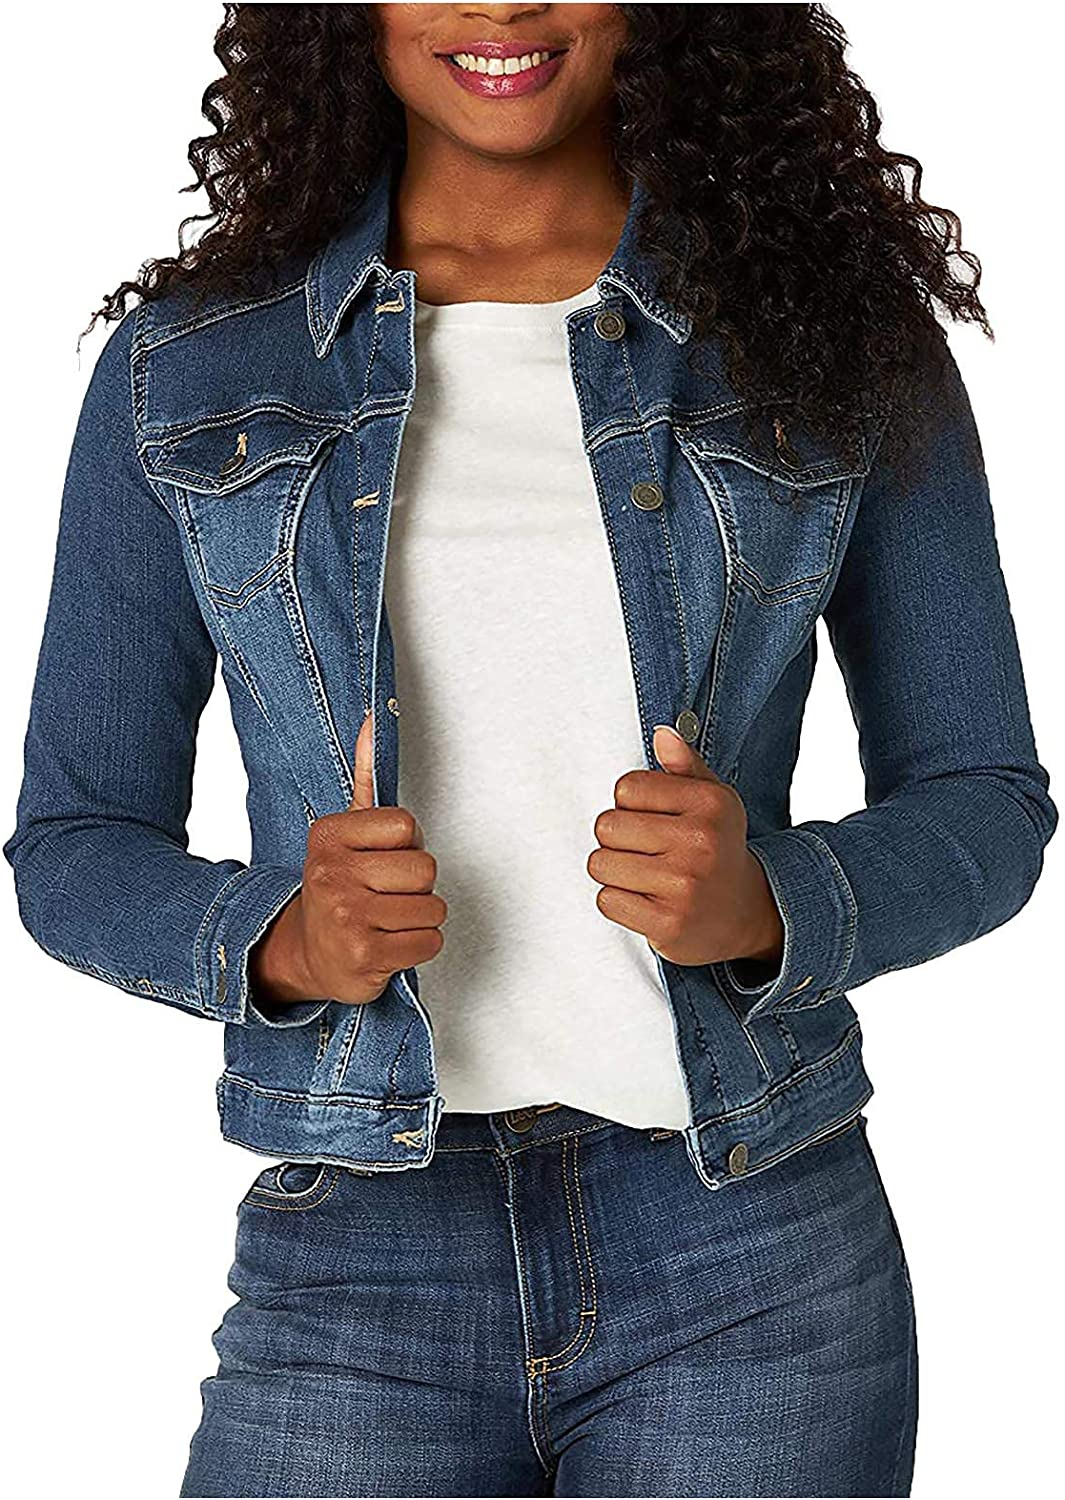 Blue Jean Jackets for Women Casual Lady Long Sleeve Jacket Max 49% OFF Coat shop